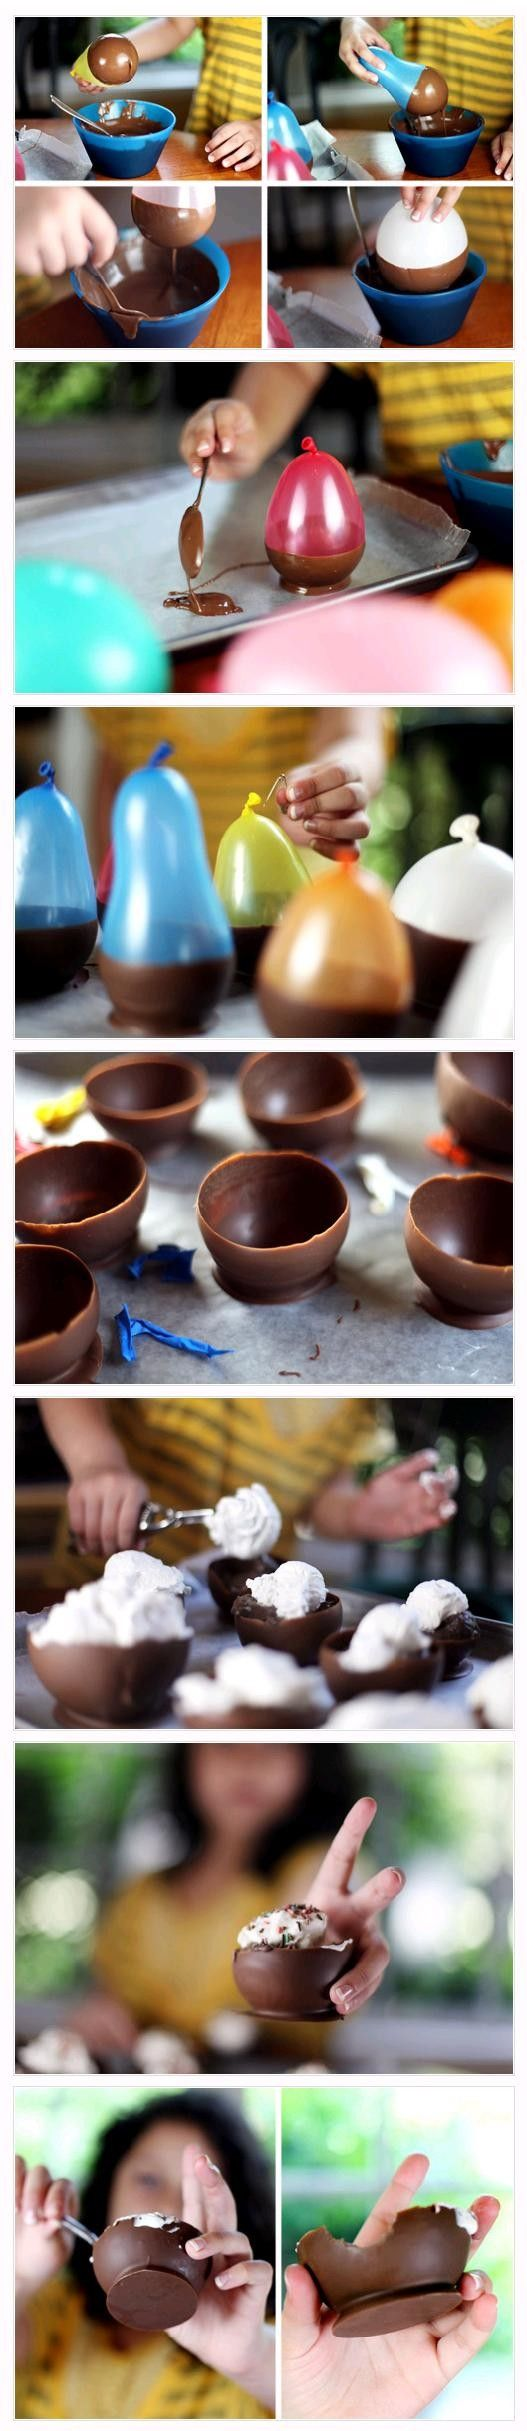 Chocolate cups made with balloons! Adorable.